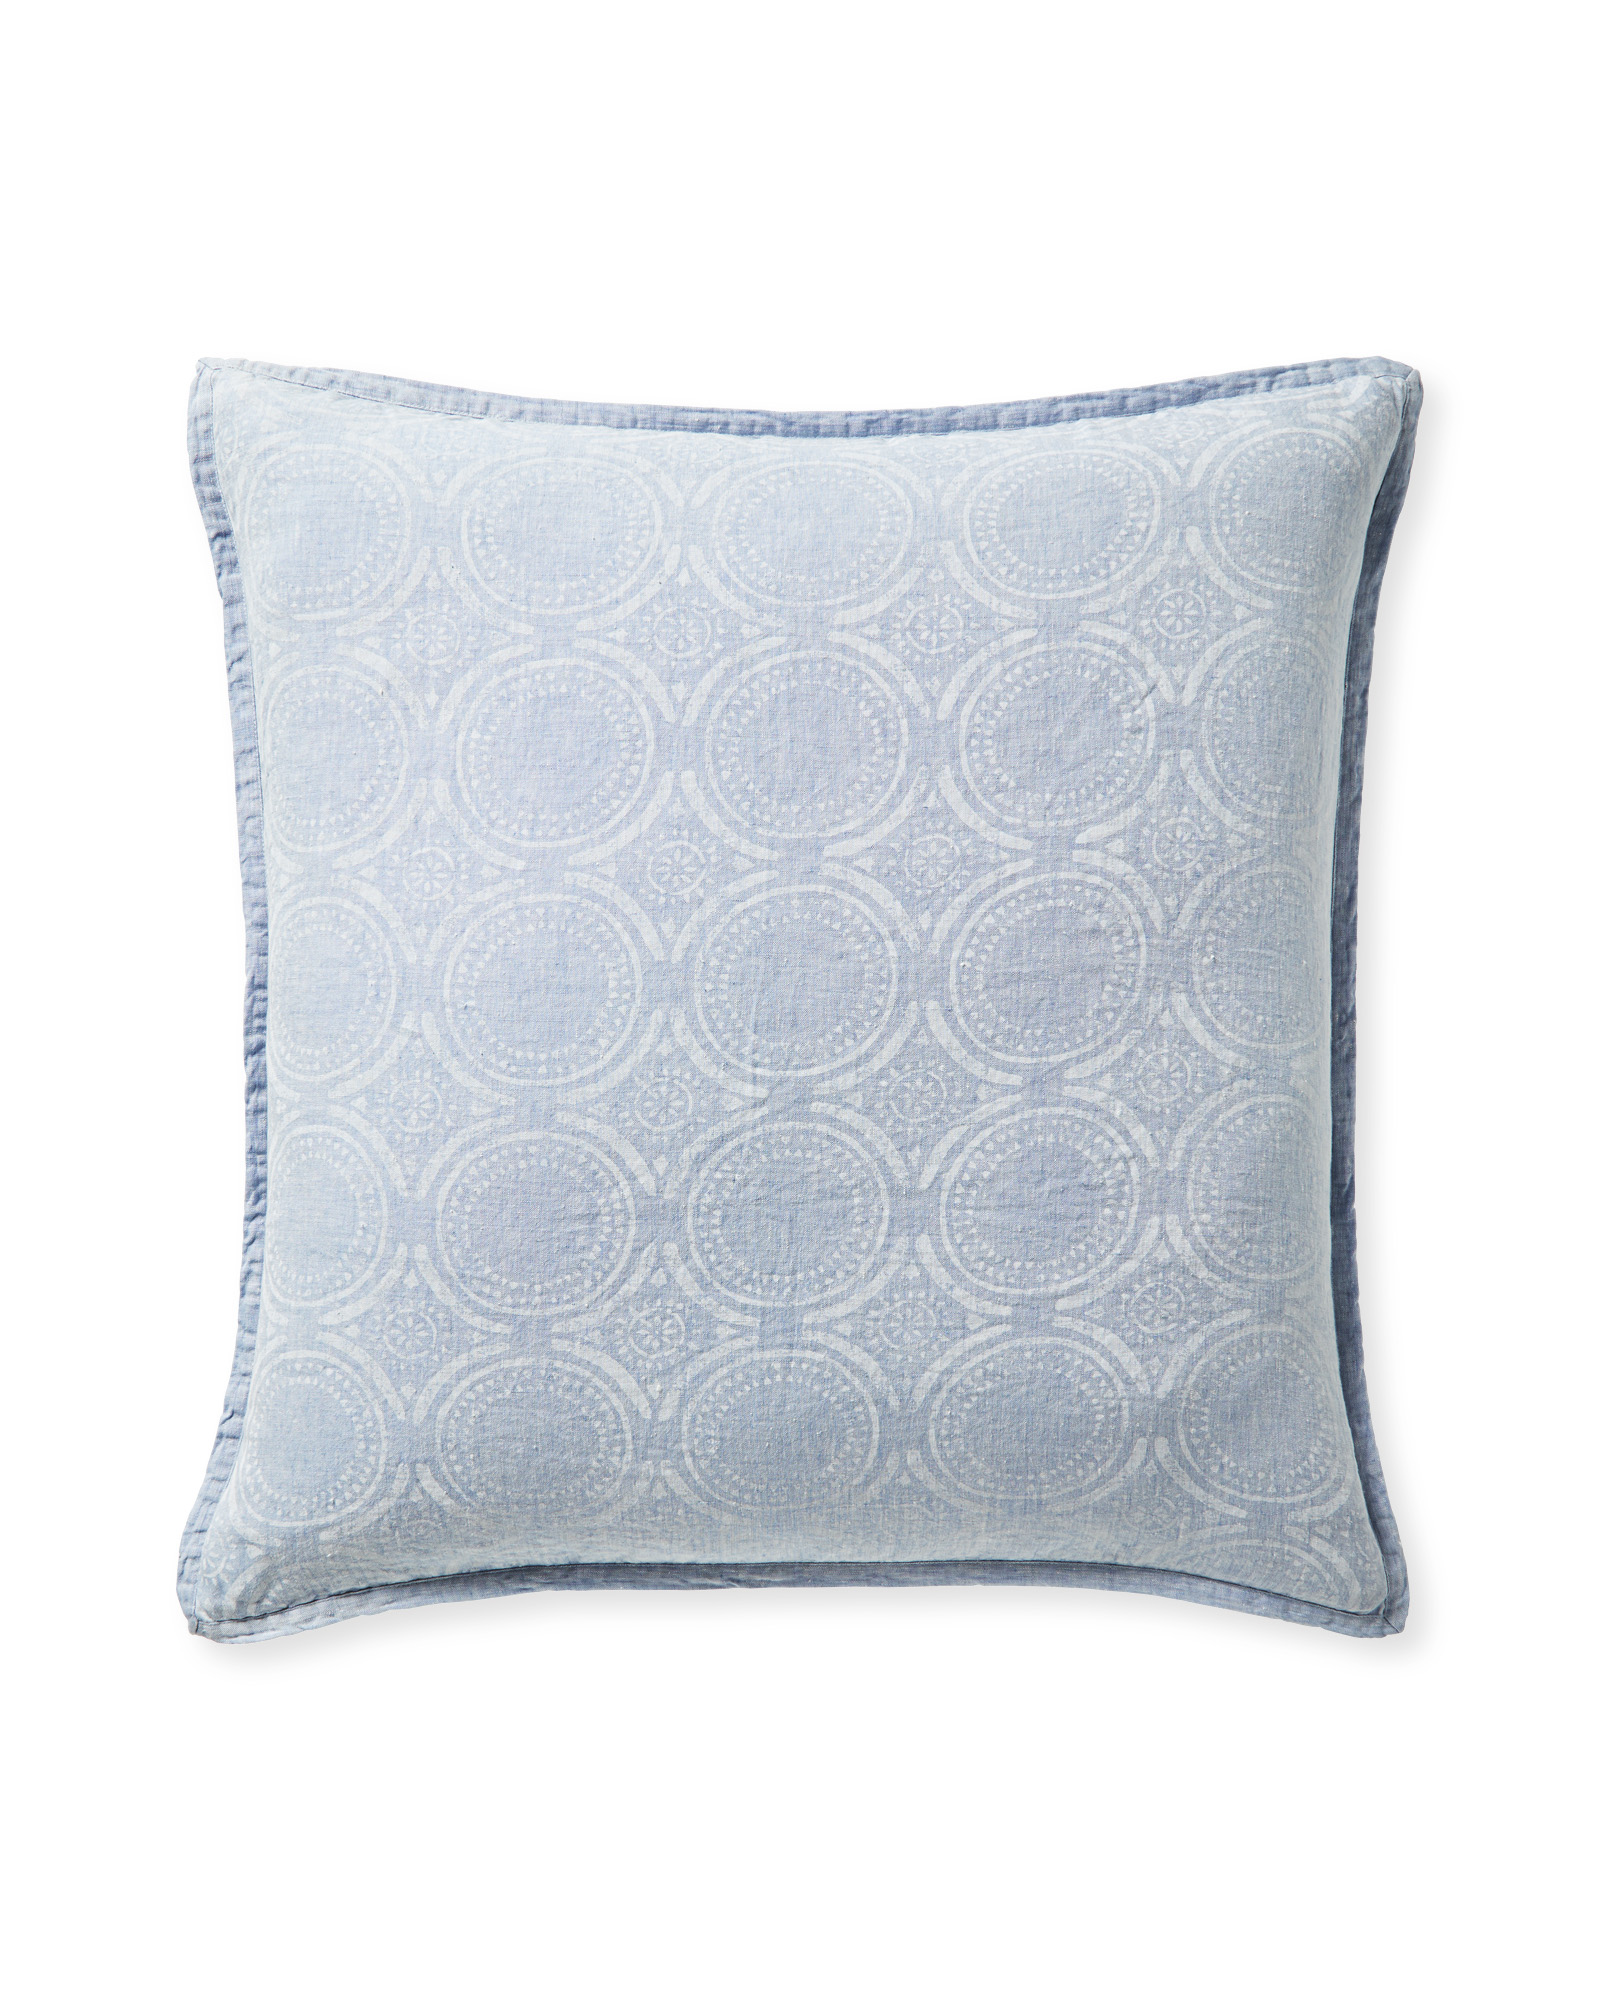 Cavallo Tile Shams, Blue Chambray